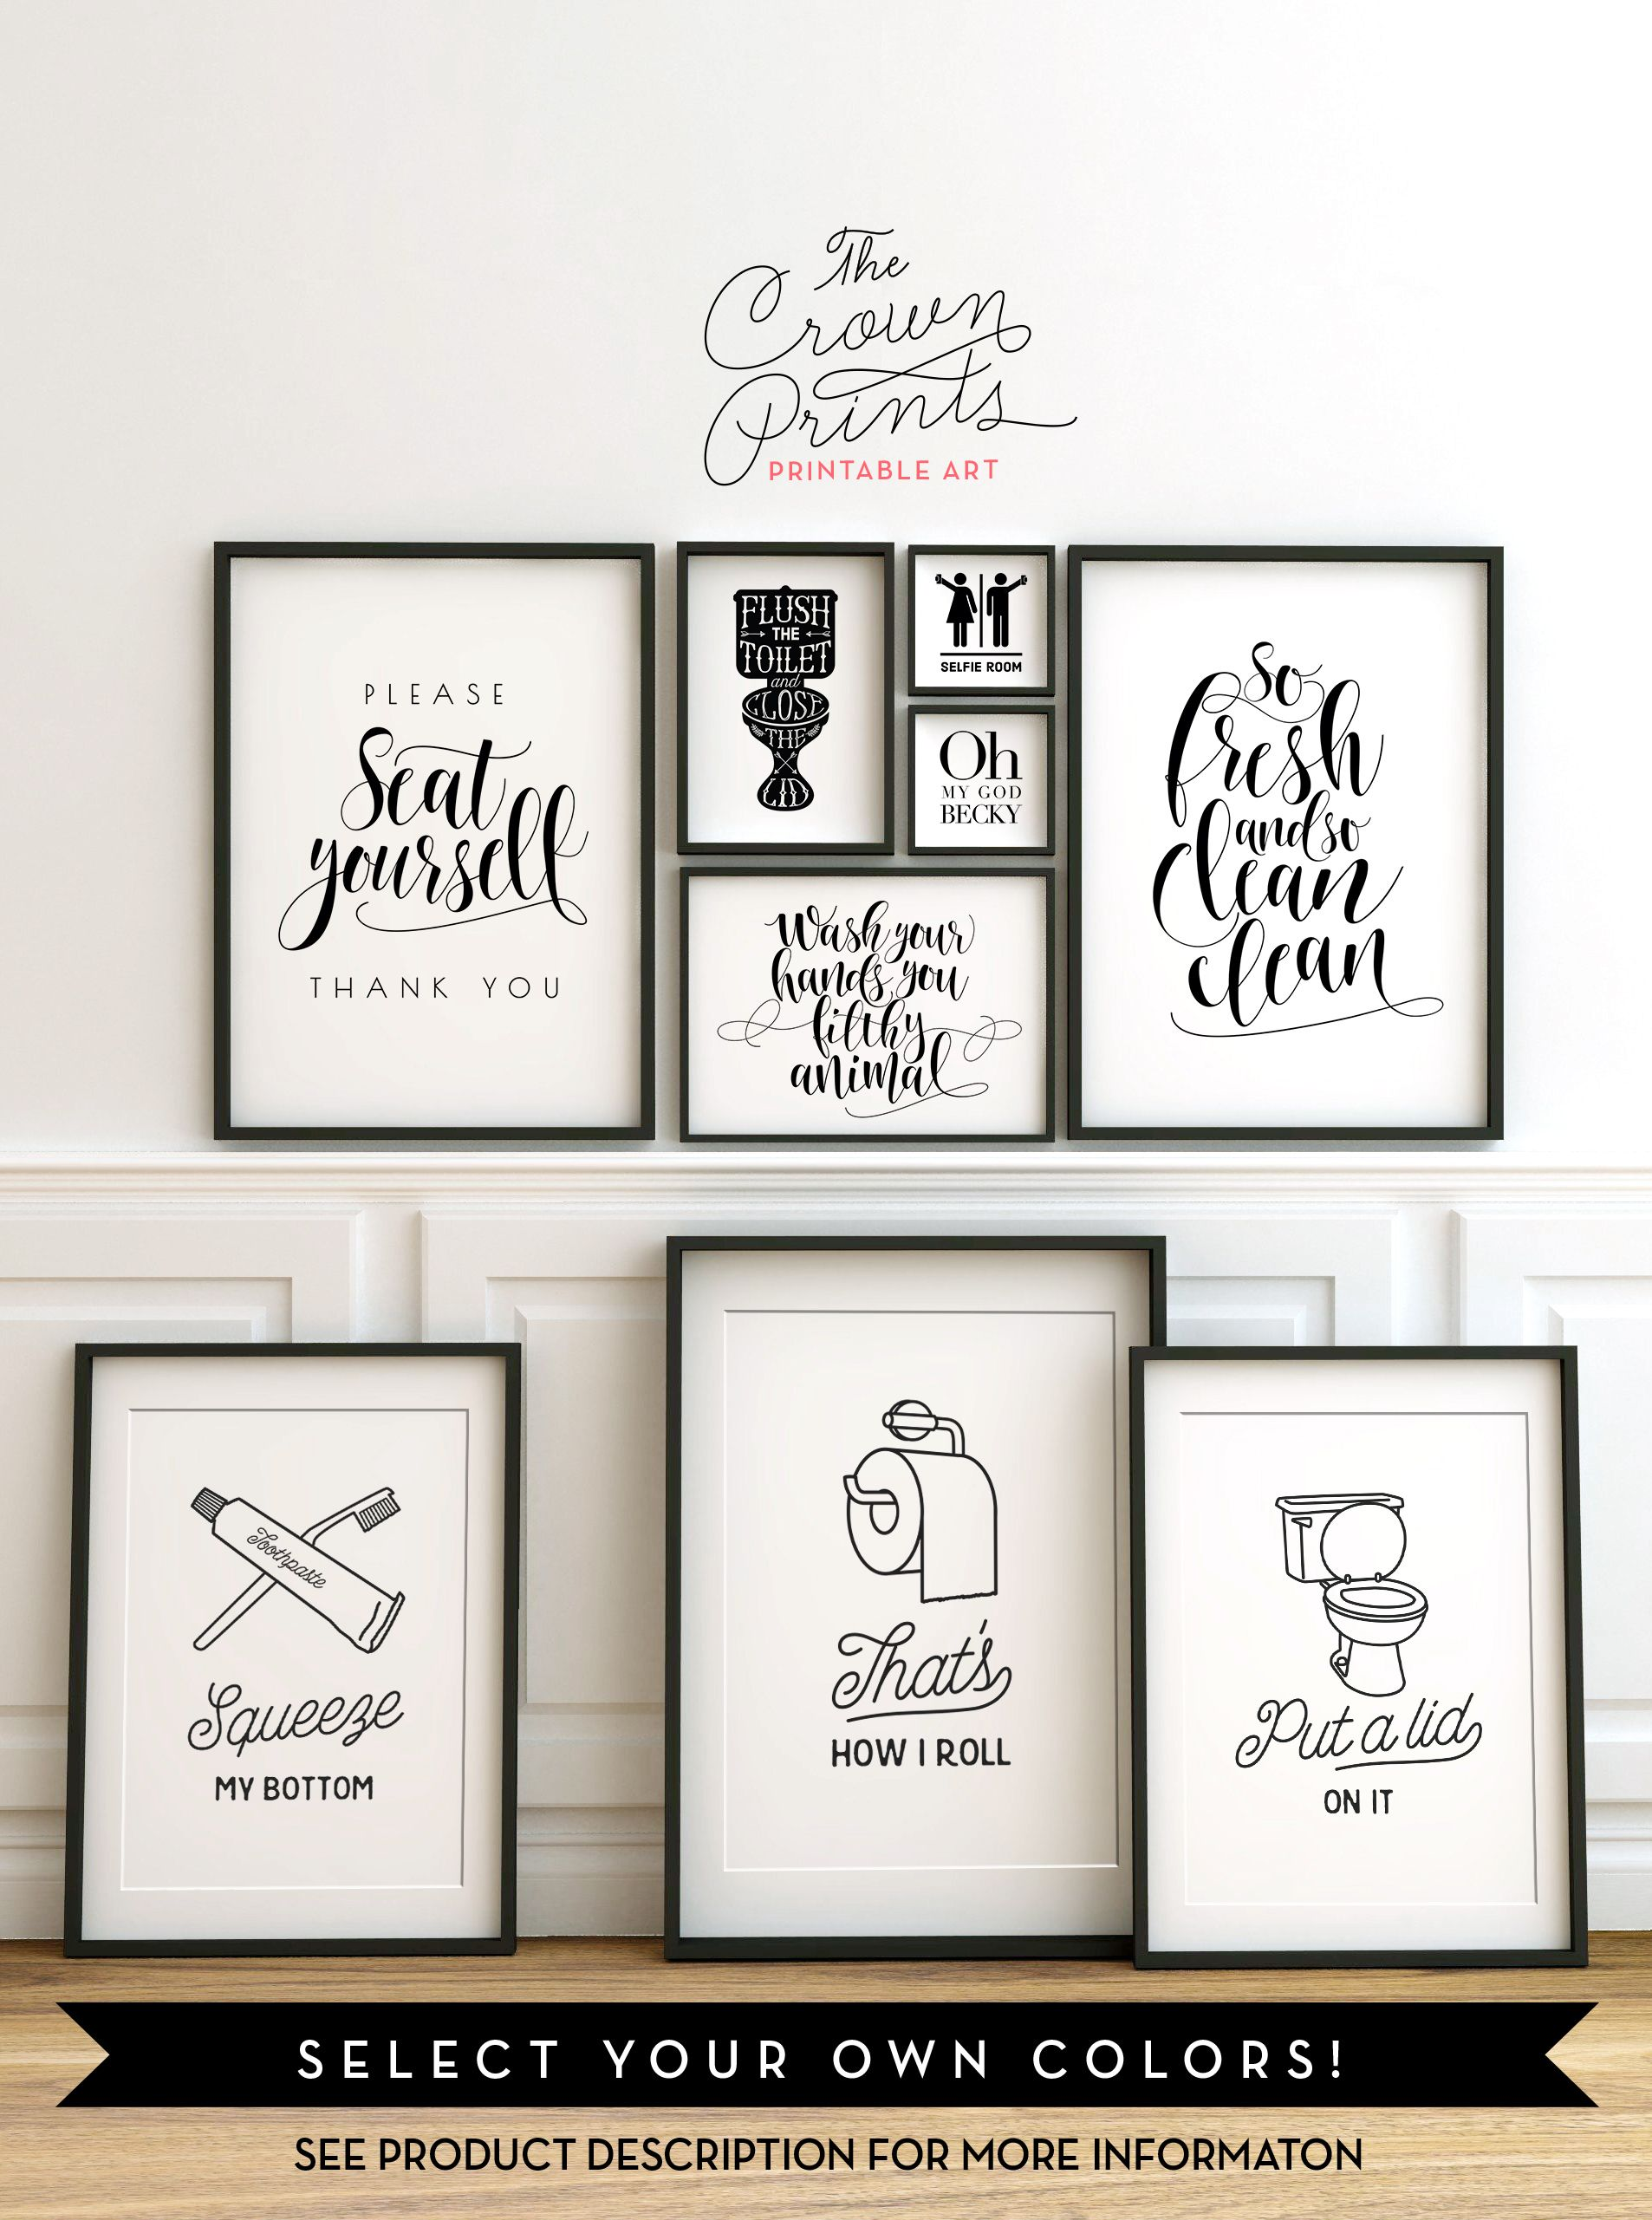 Printable bathroom wall art from the crown prints on etsy for Vintage bathroom printables